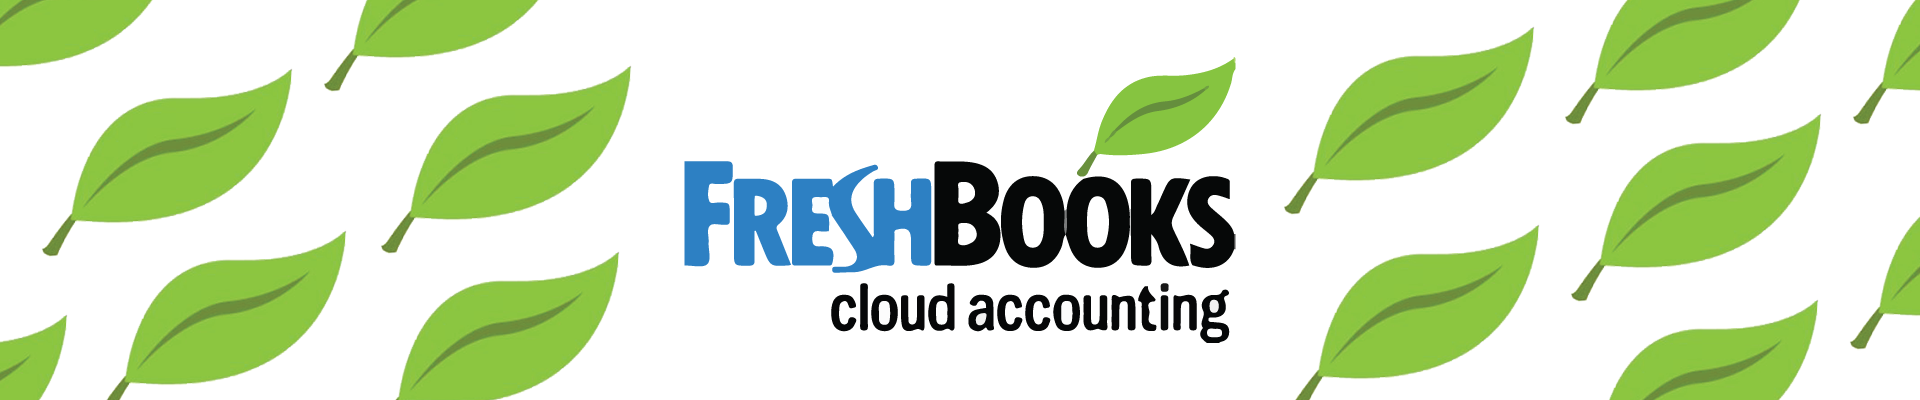 FreshBooks API Announcement